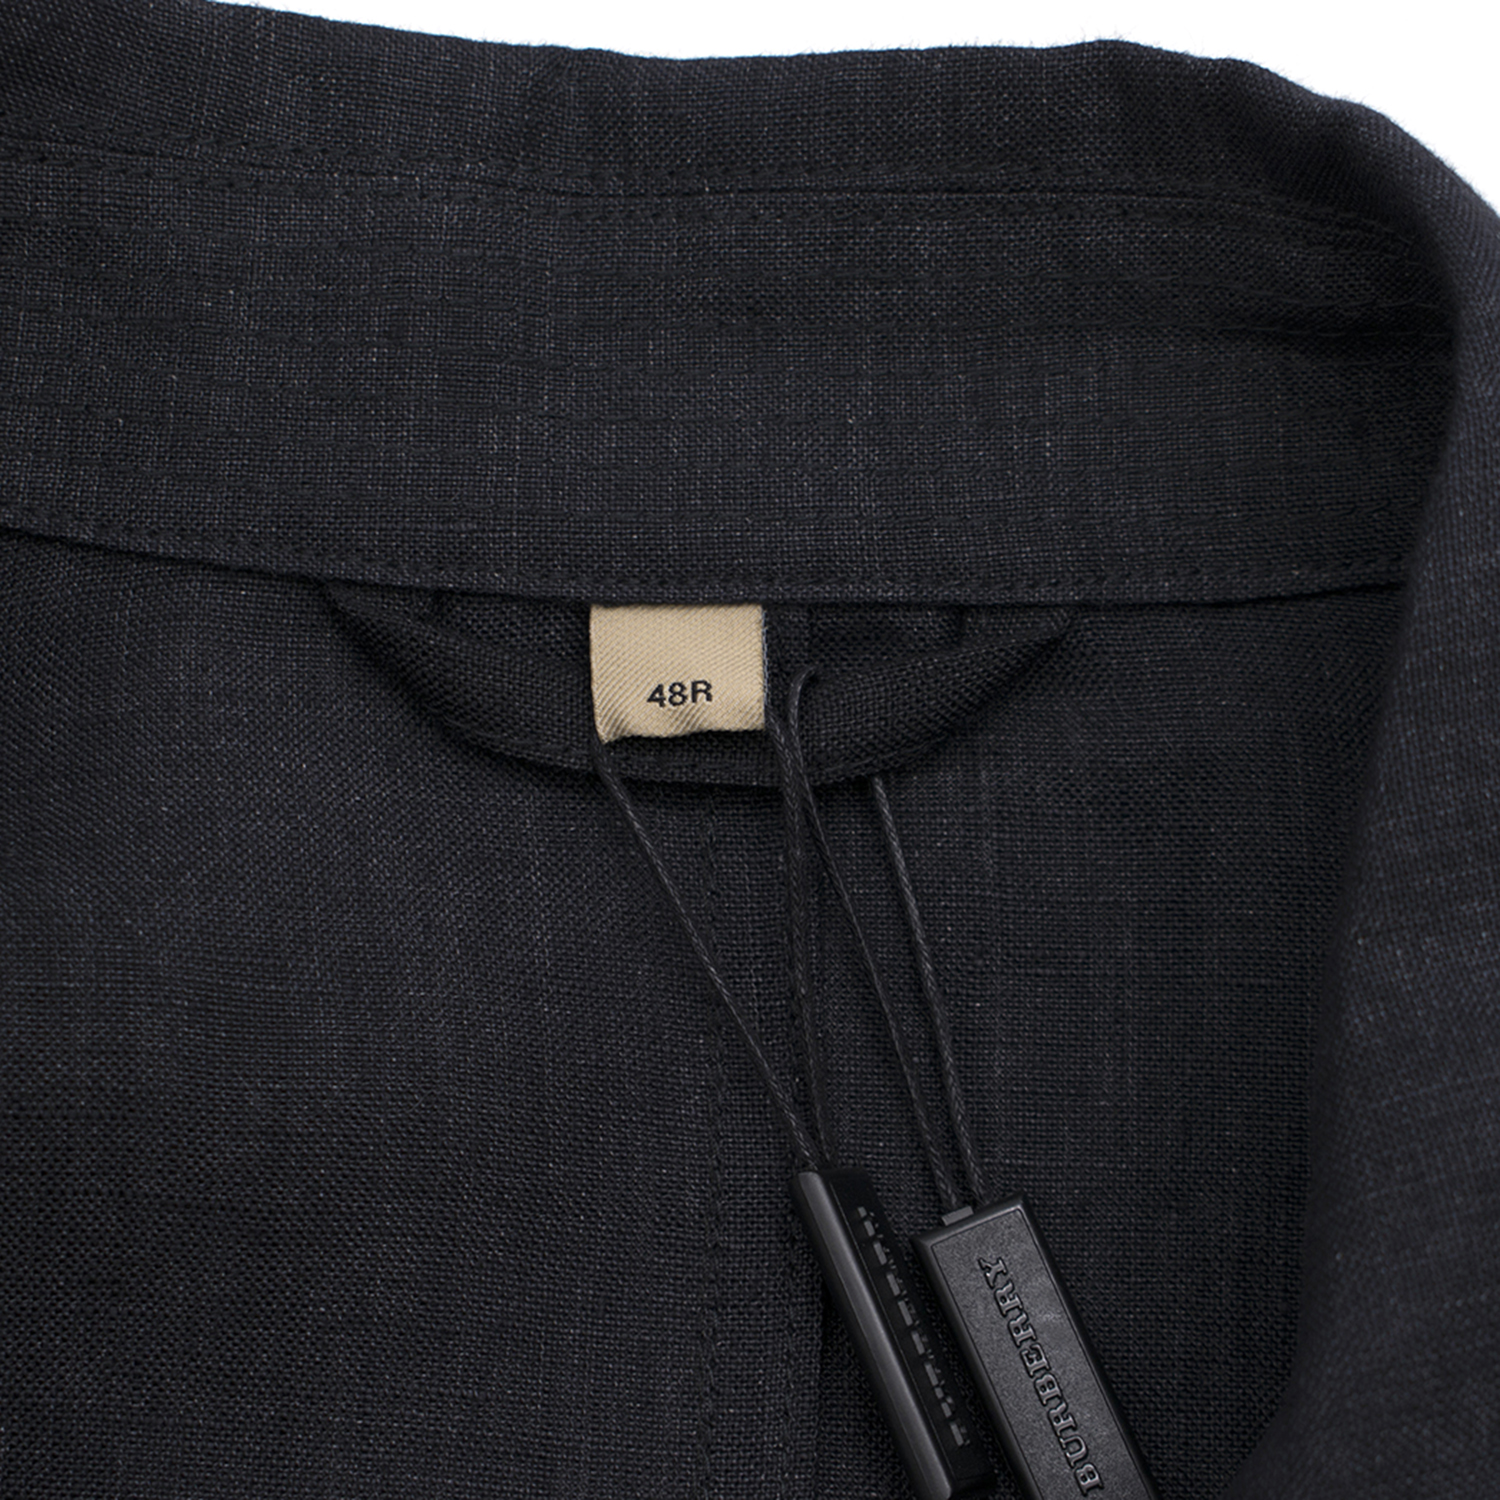 d40c752c7c44 Burberry Linen Double-breasted Artist Jacket Charcoal. 29. 12345678910